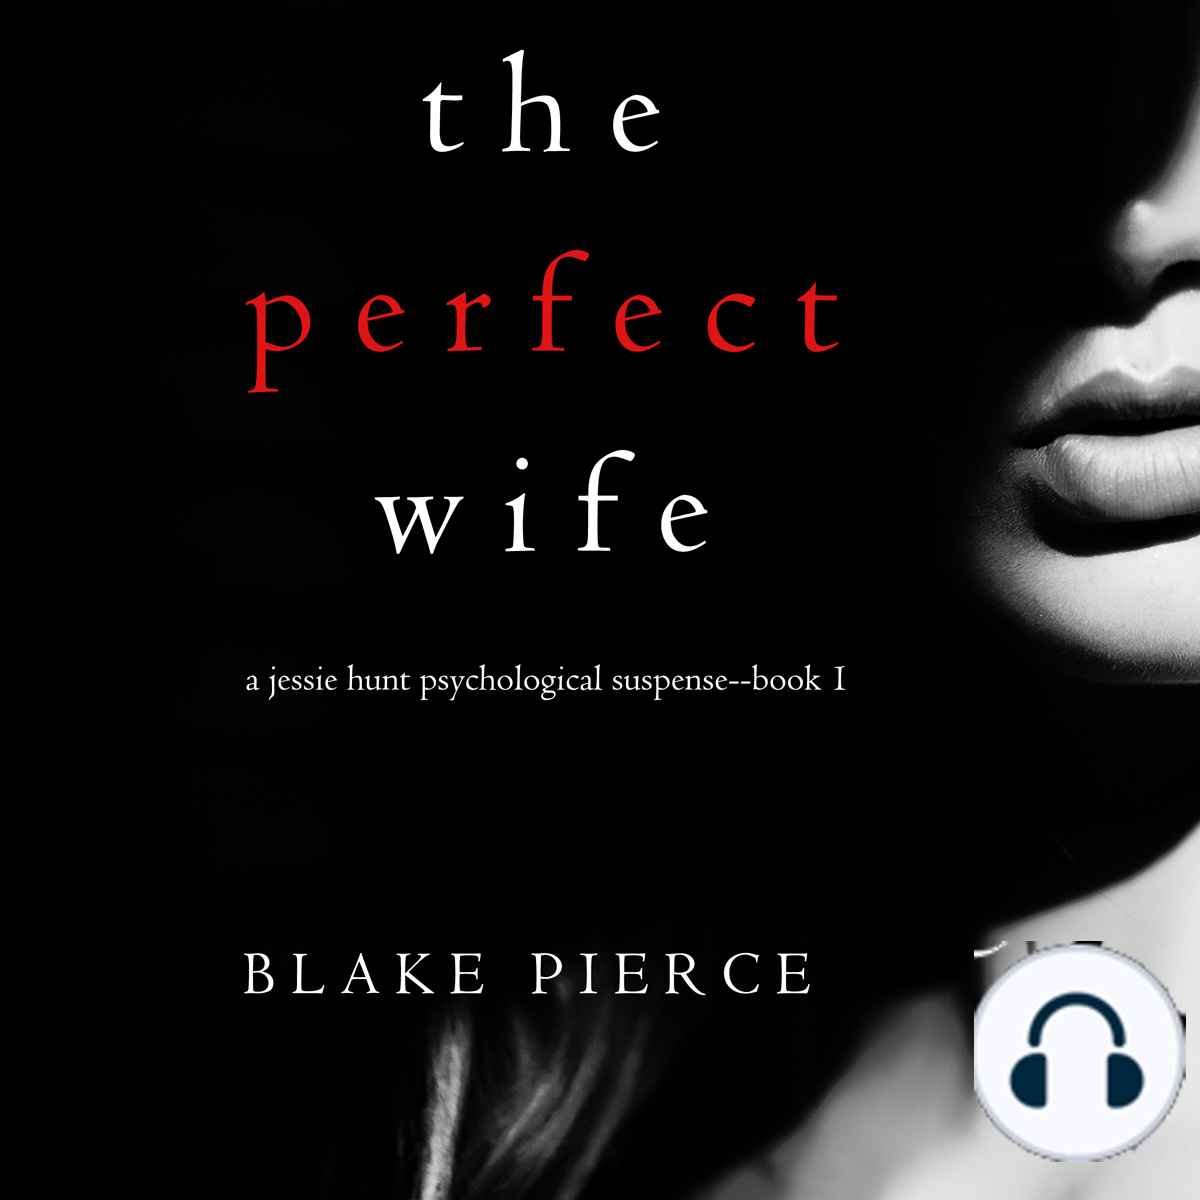 The Perfect Wife Audio with headphones